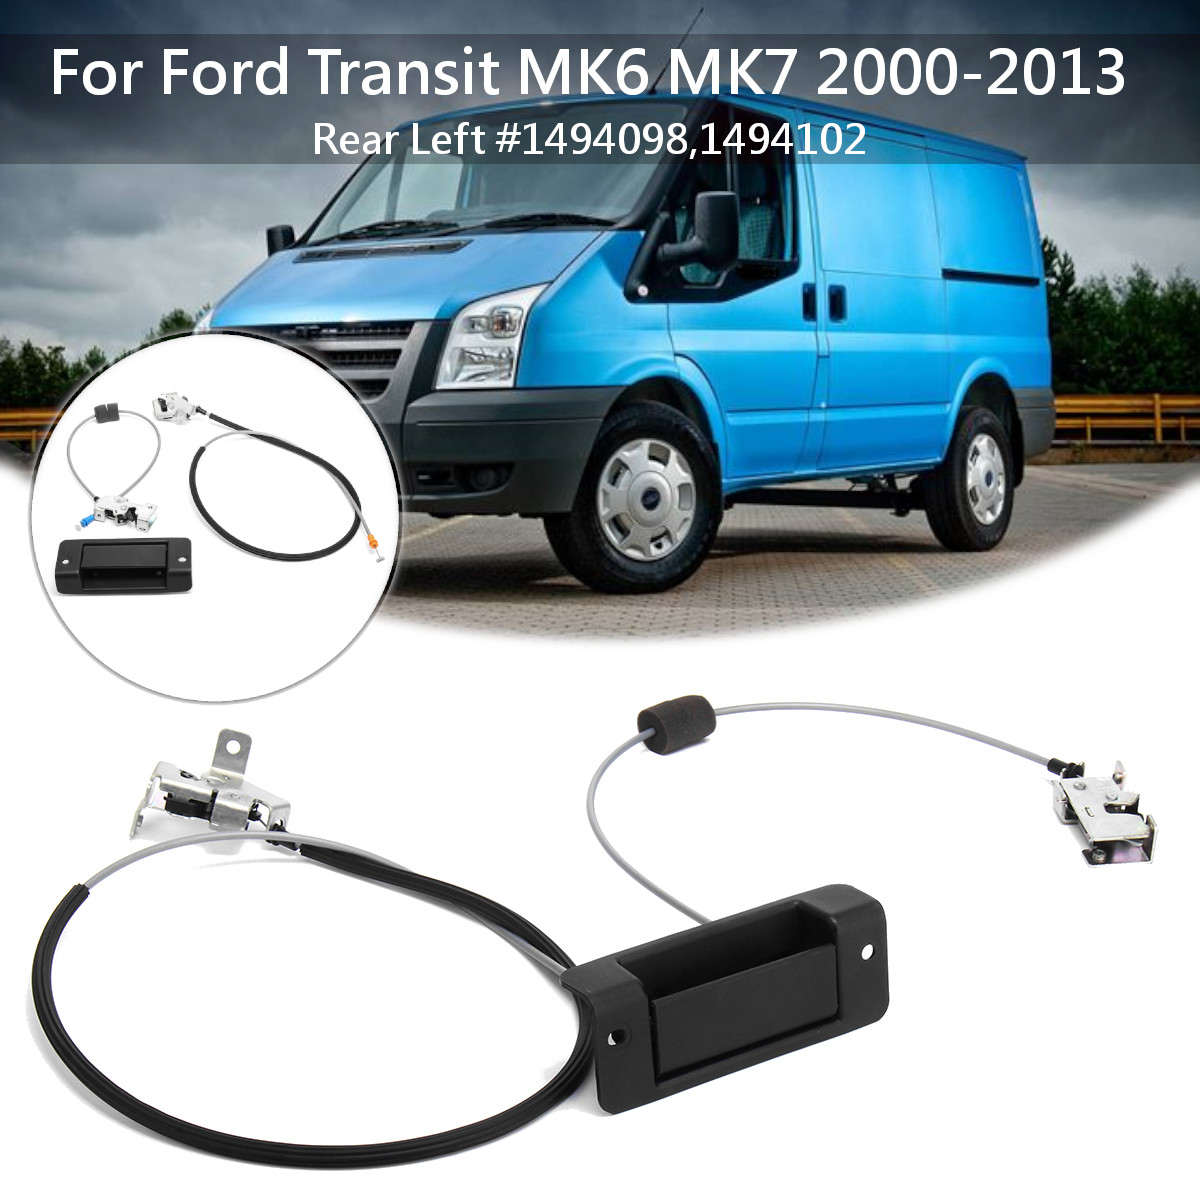 Rear Left Door Handle + Upper & Lower Lock Latch Cable For Ford Transit MK6 MK7 2000-2013 1494098 1494102